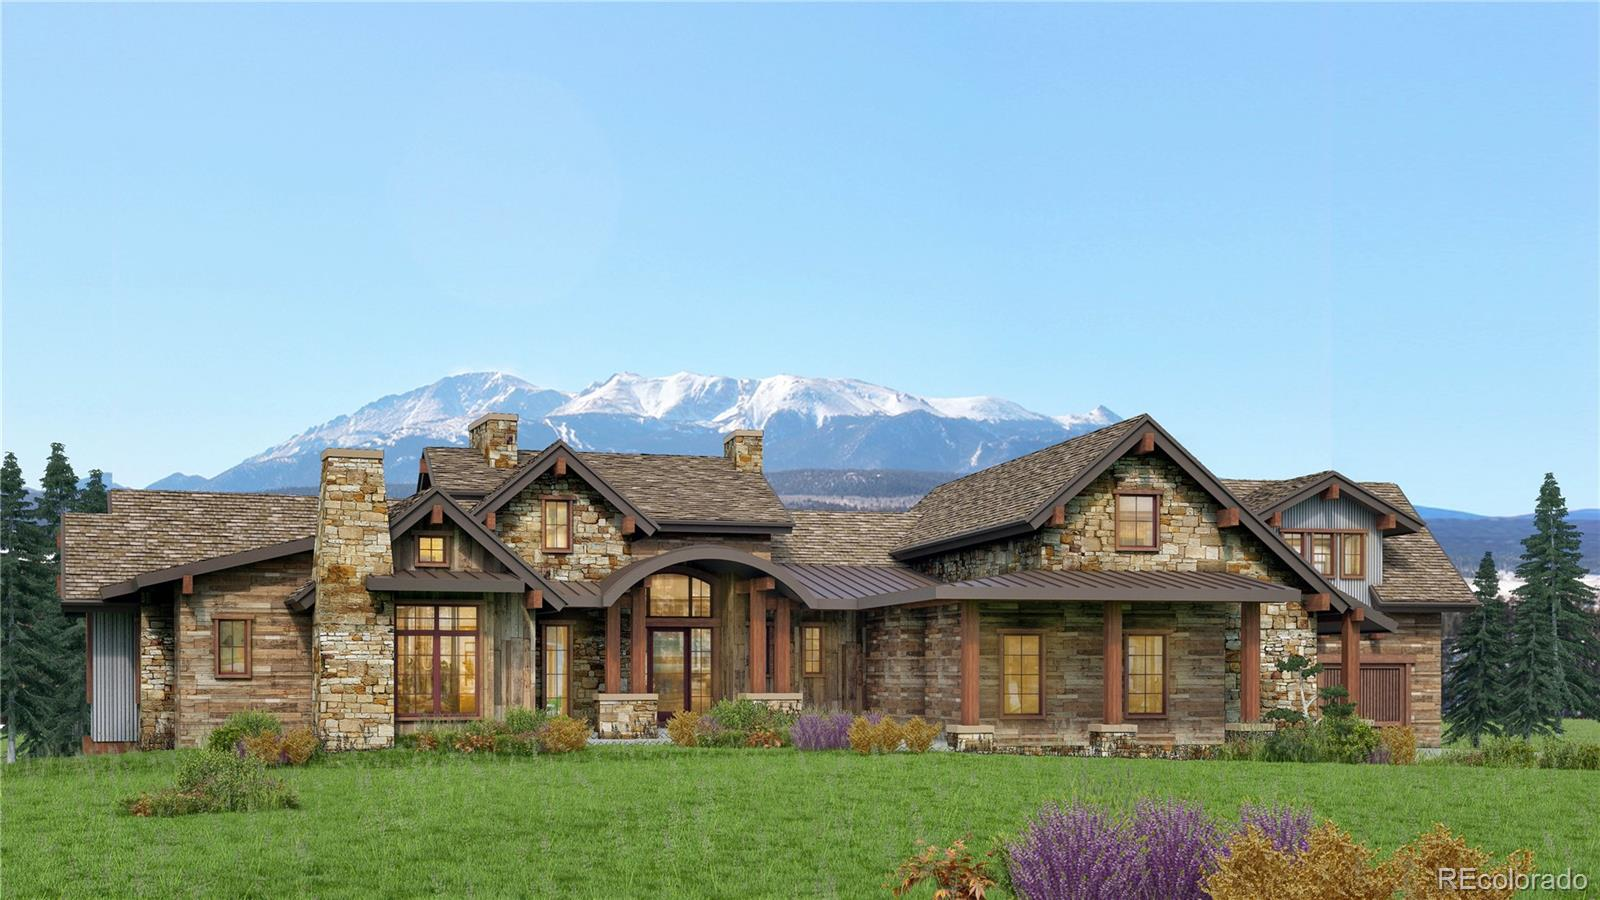 """Truly a """"Colorado Mountain Ranch"""" to-be-built by Sterling Custom Homes with panoramic mountain views, set on 56 sprawling acres in the luxurious gated, estate community of Bears Den. The estimated completion of this custom home is the second half of 2022. Sterling Homes is known for their """"built-in"""" WOW impact, blending your home perfectly with the surrounding landscape to maximize views and native topography. The home combines classic earthy materials such as thick stacked stone, wood flooring & large ceiling  beams. Countless, expansive windows will frame the 360 degree views, ranging from the Town of Castle Rock, north to the Denver skyline, with a backdrop of the Pike National Forest. This walk-out ranch style home will feature  open-living rooms with spacious gathering areas flowing from the inside out, a large kitchen and ample dining spaces, a main floor master suite and an upper level guest suite. The master craftsmanship embraces comfortable, livable elegance.  The ranch sized lot is large enough for custom outbuildings of the owner's choice--be it a horse barn, car barn, riding arena, sports court, etc. (not included in said estimated list price).  This one-of-a-kind WOW property is rarely seen """"close in""""--56 Acres, gated estate community, peace & quite & fabulous views.  So many possibilities for the discretionary buyer.     LOT CANNOT BE SUBDIVIDED"""